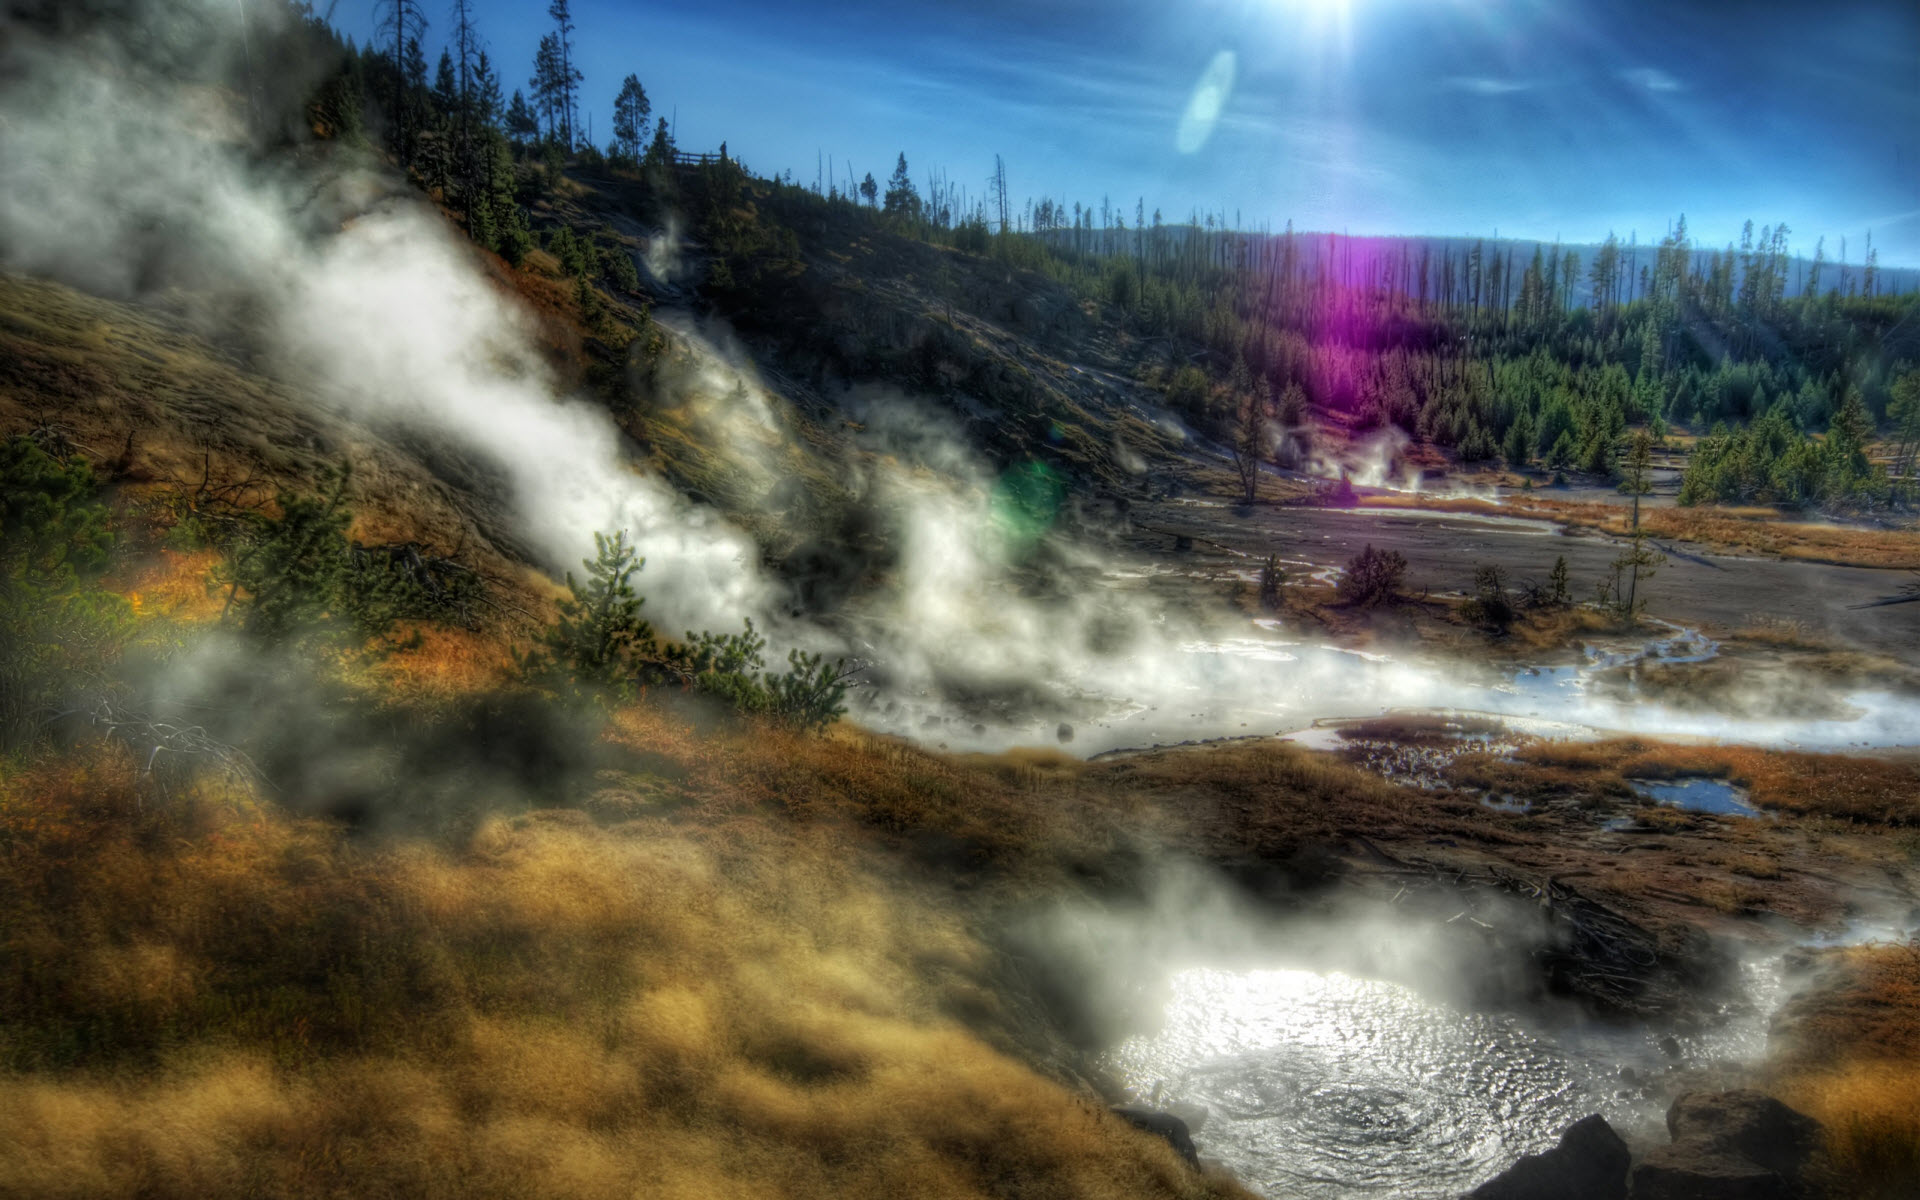 yellowstone national park hd wallpaperbackgroundshdimagessearch 1920x1200